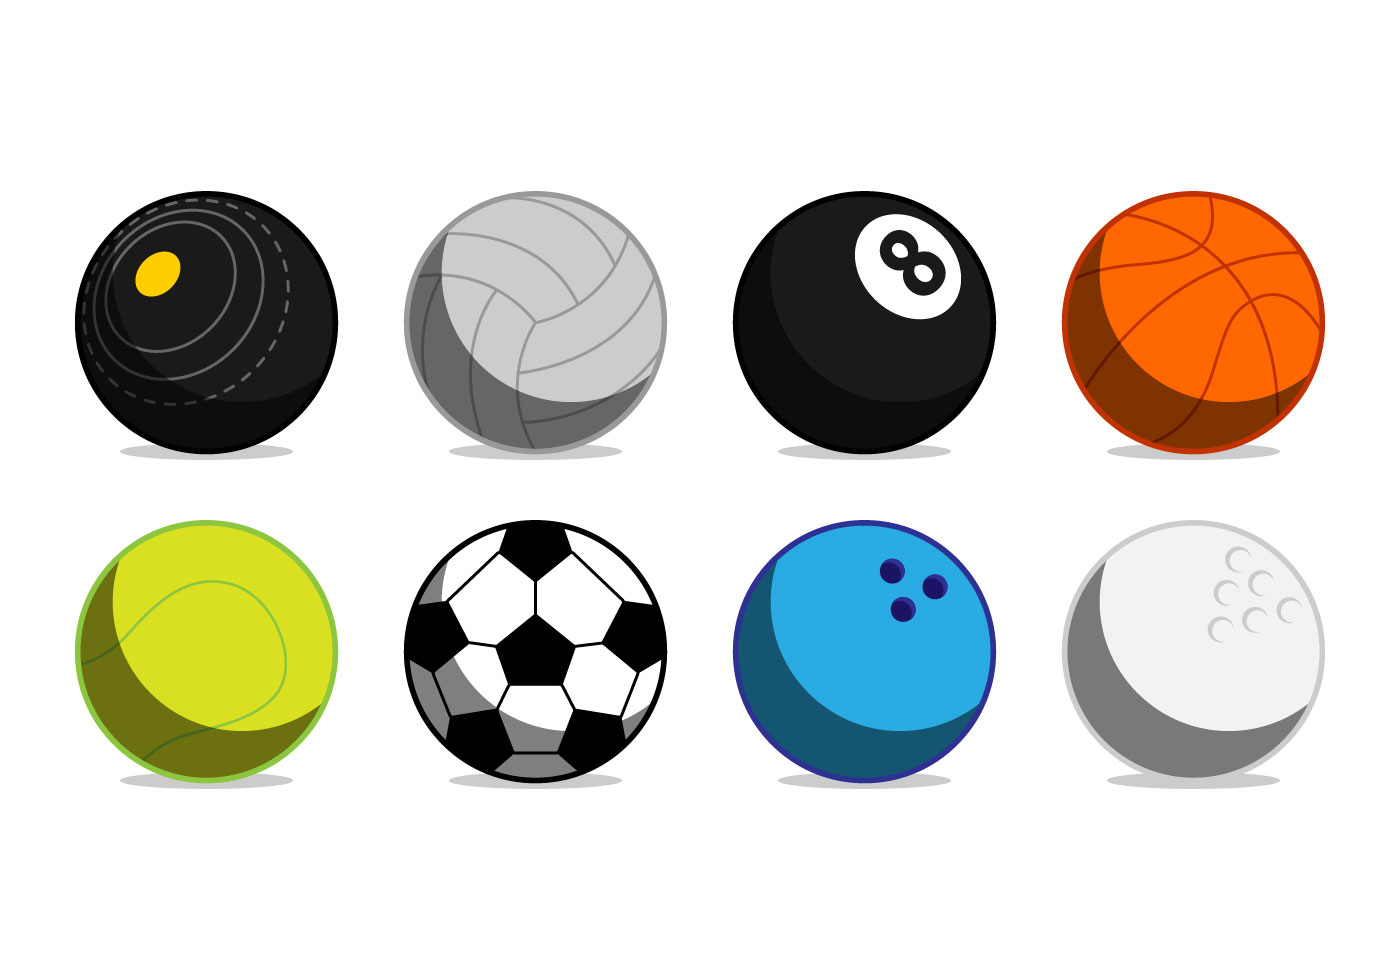 Sports Ball Vector Background Art Free Download: Free Sports Ball Icon Vector